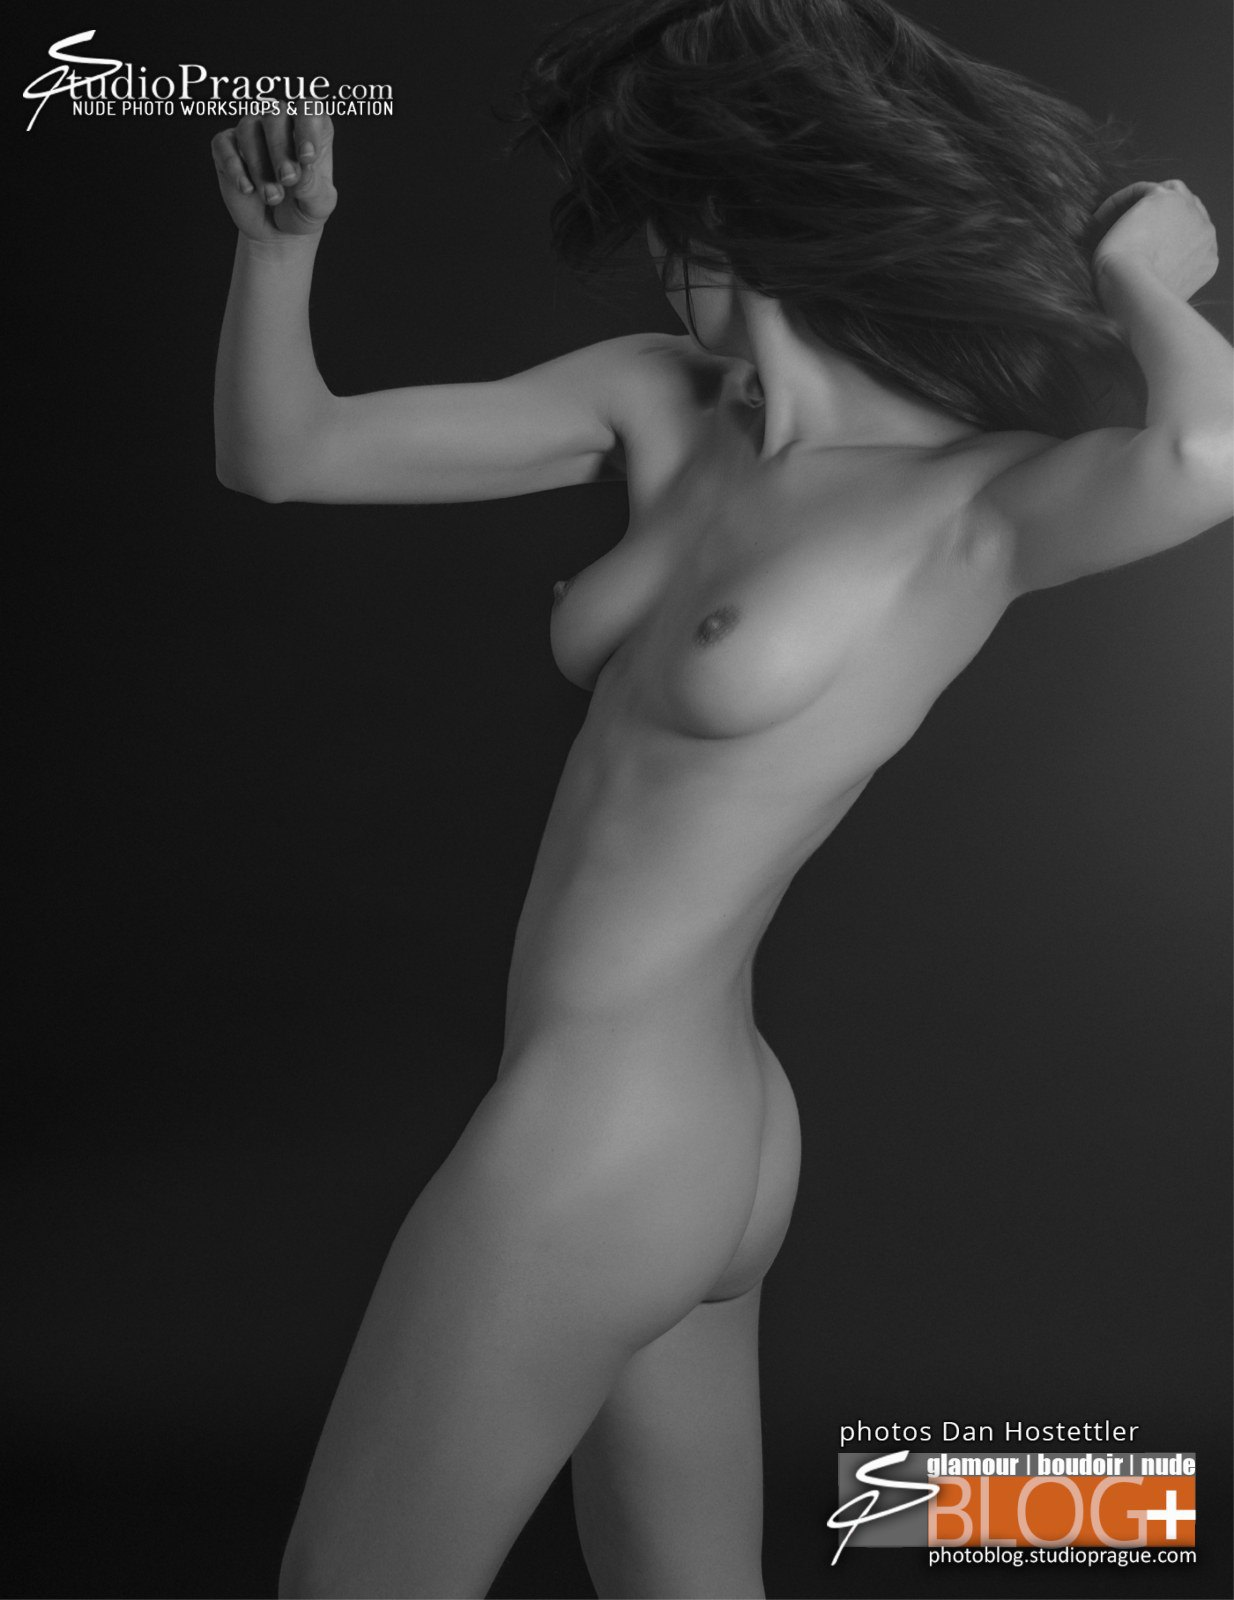 fashionNUDES & Glamour Poses - Vol 2 - by Dan Hostettler